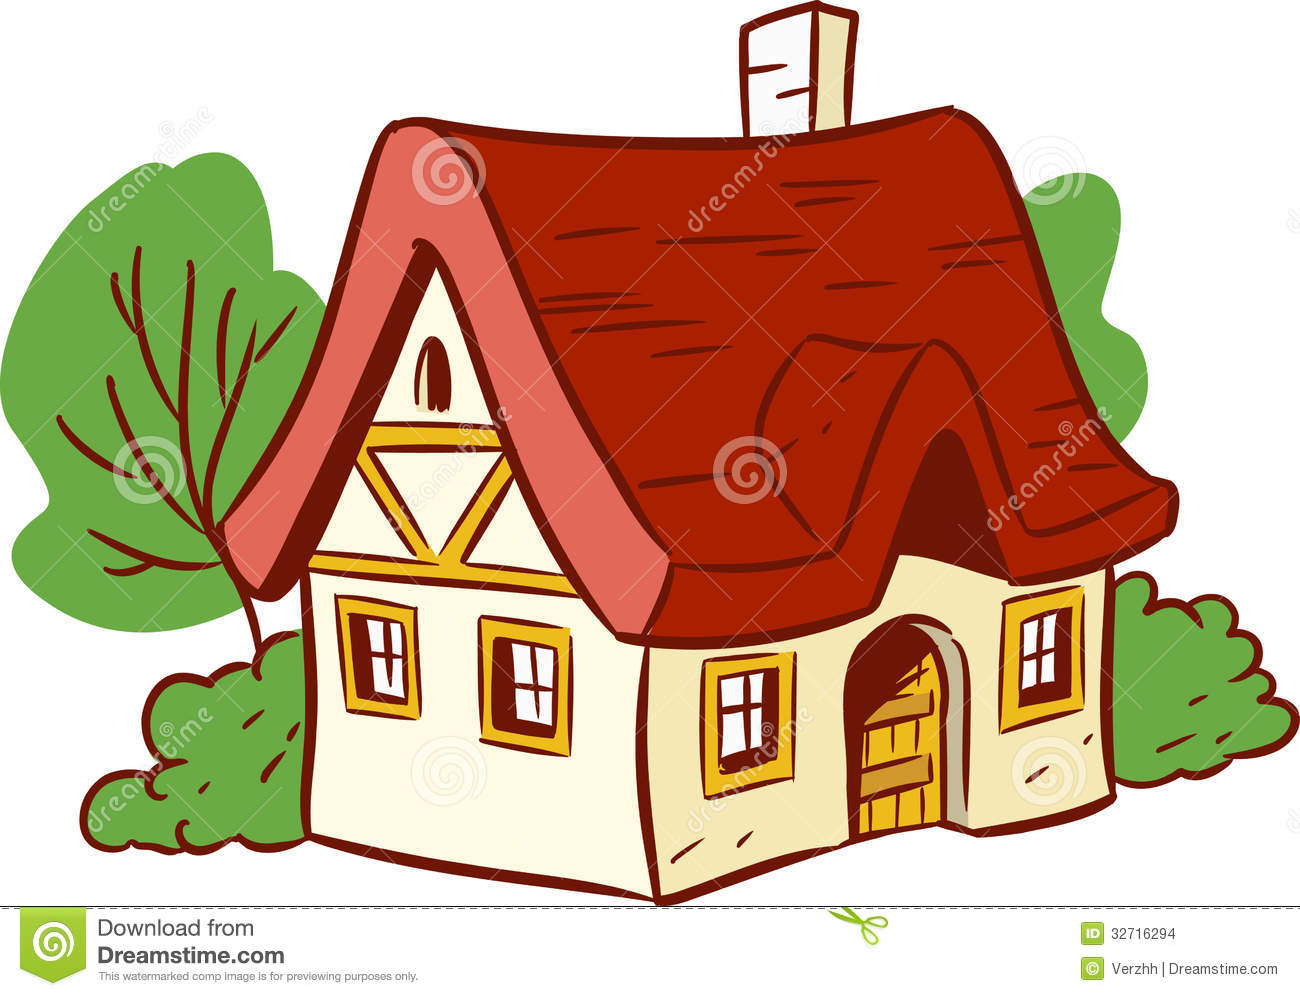 Small home clipart clip freeuse download Small house clipart 4 » Clipart Station clip freeuse download